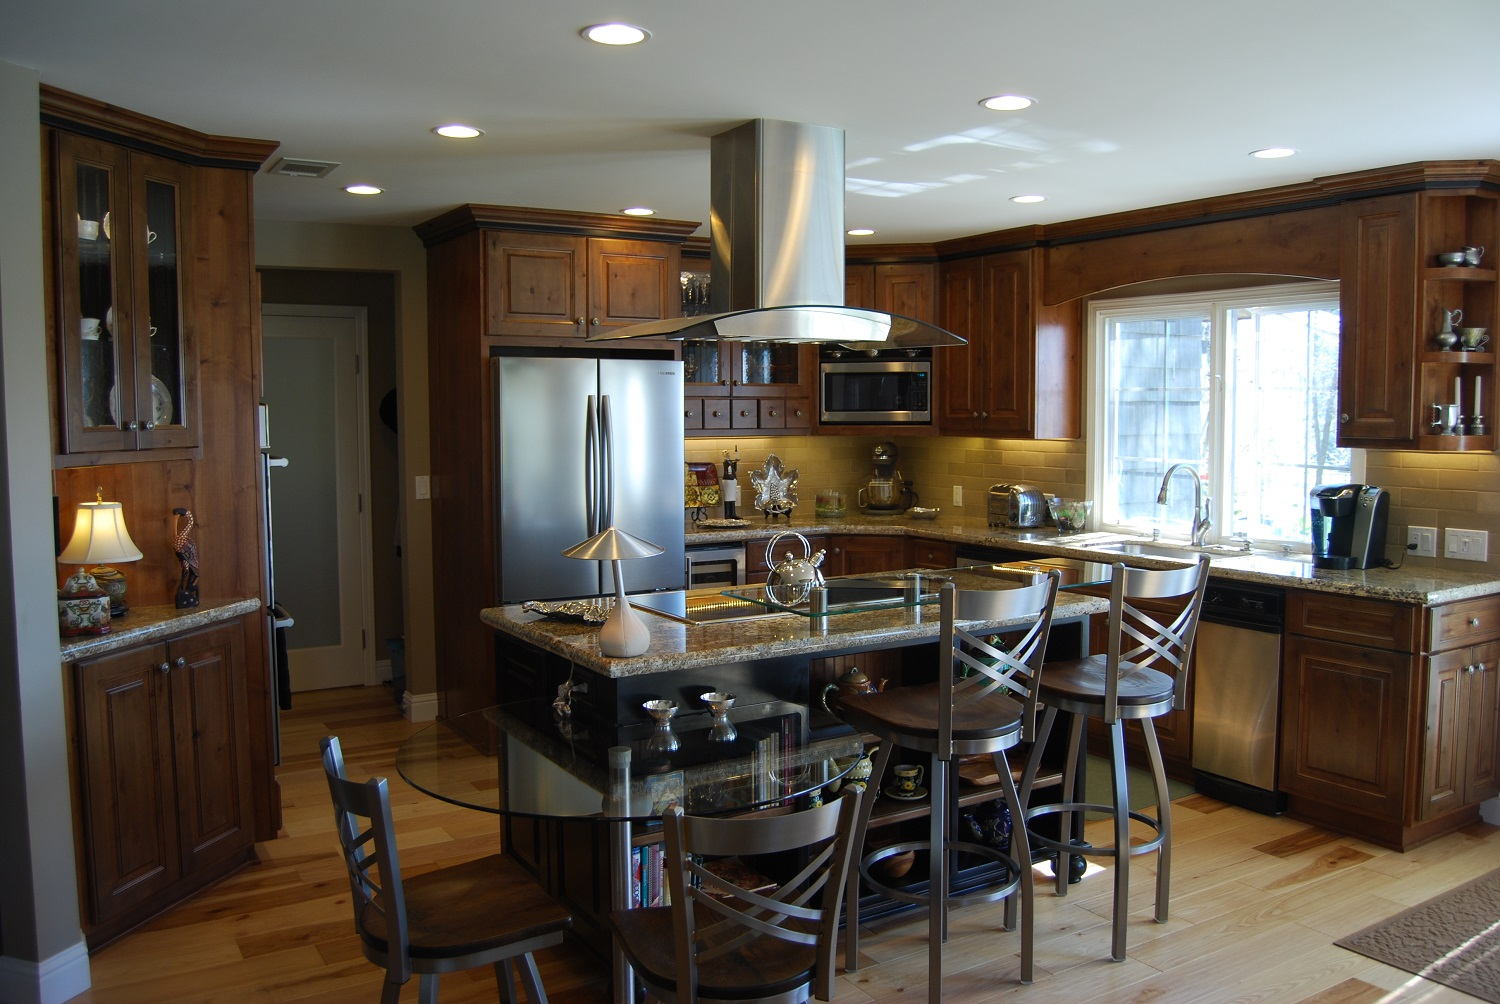 knotty hickory floors, arched glass range hood, glass counter table and bar